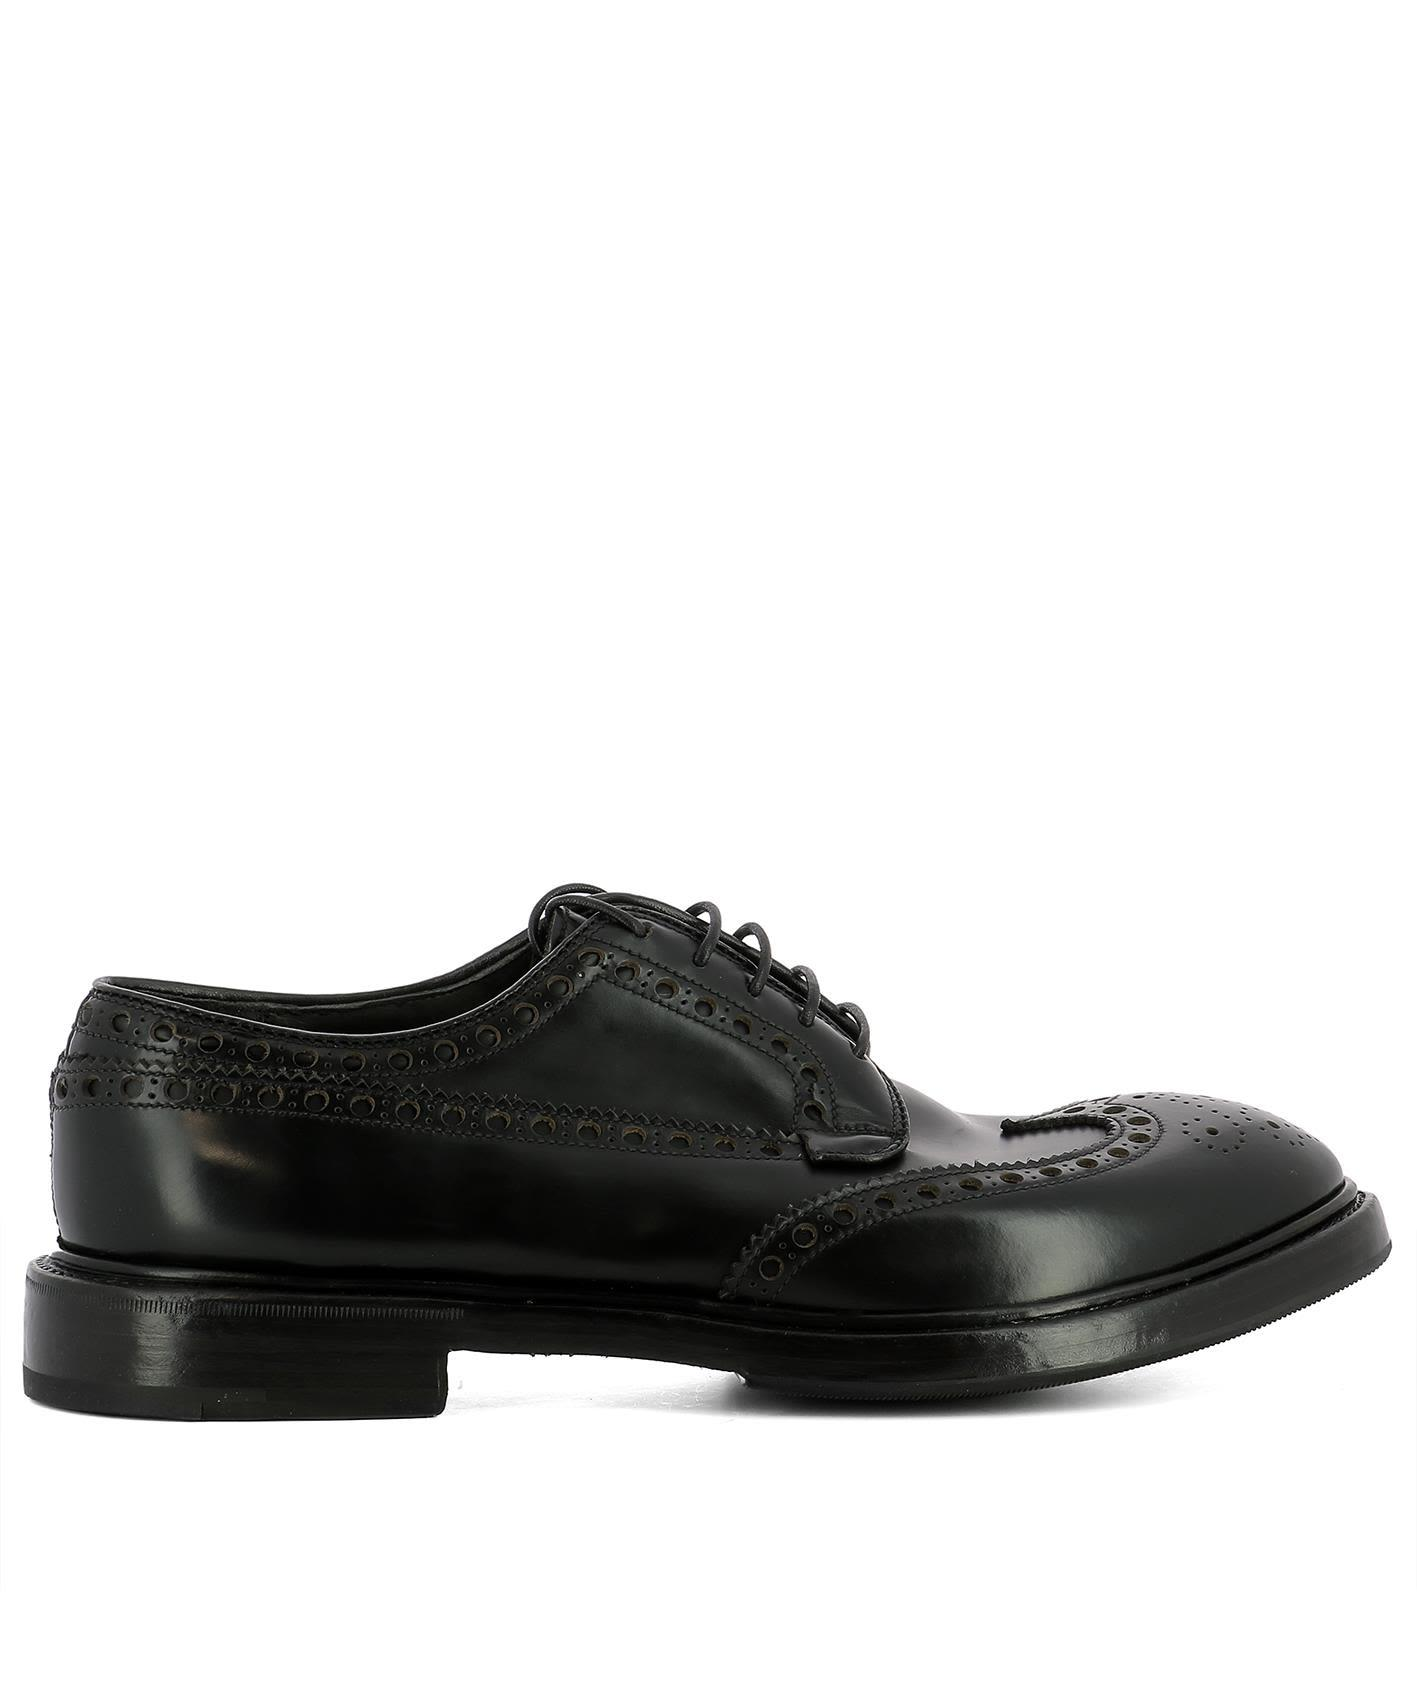 Premiata Men's Classic Leather Lace Up Laced Formal Shoes Boys Derby In Black